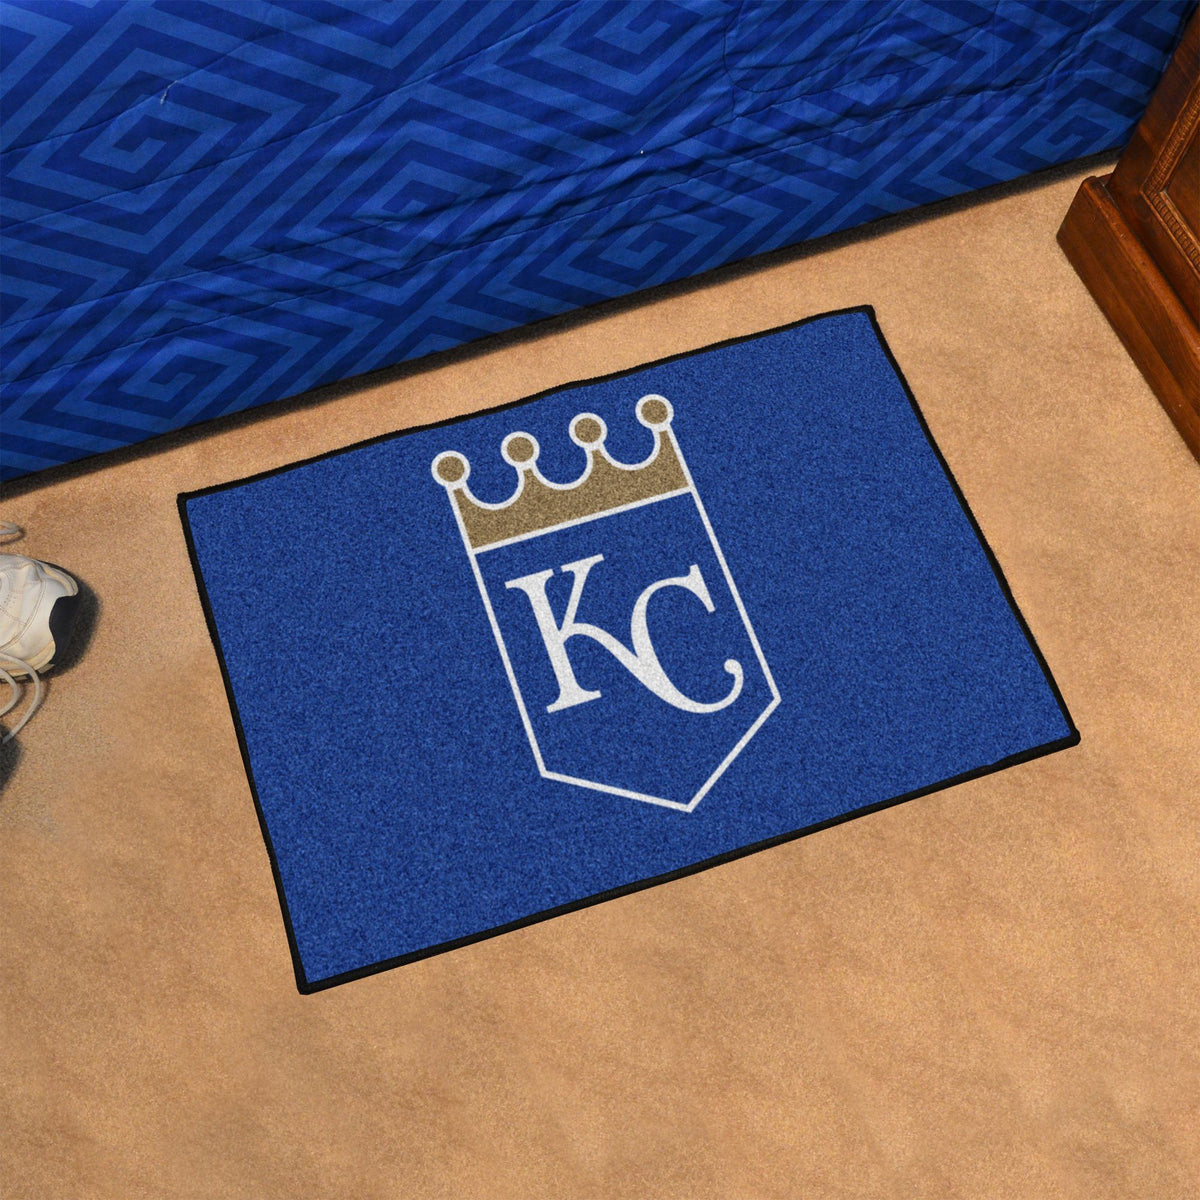 MLB - Starter Mat MLB Mats, Rectangular Mats, Starter Mat, MLB, Home Fan Mats Kansas City Royals